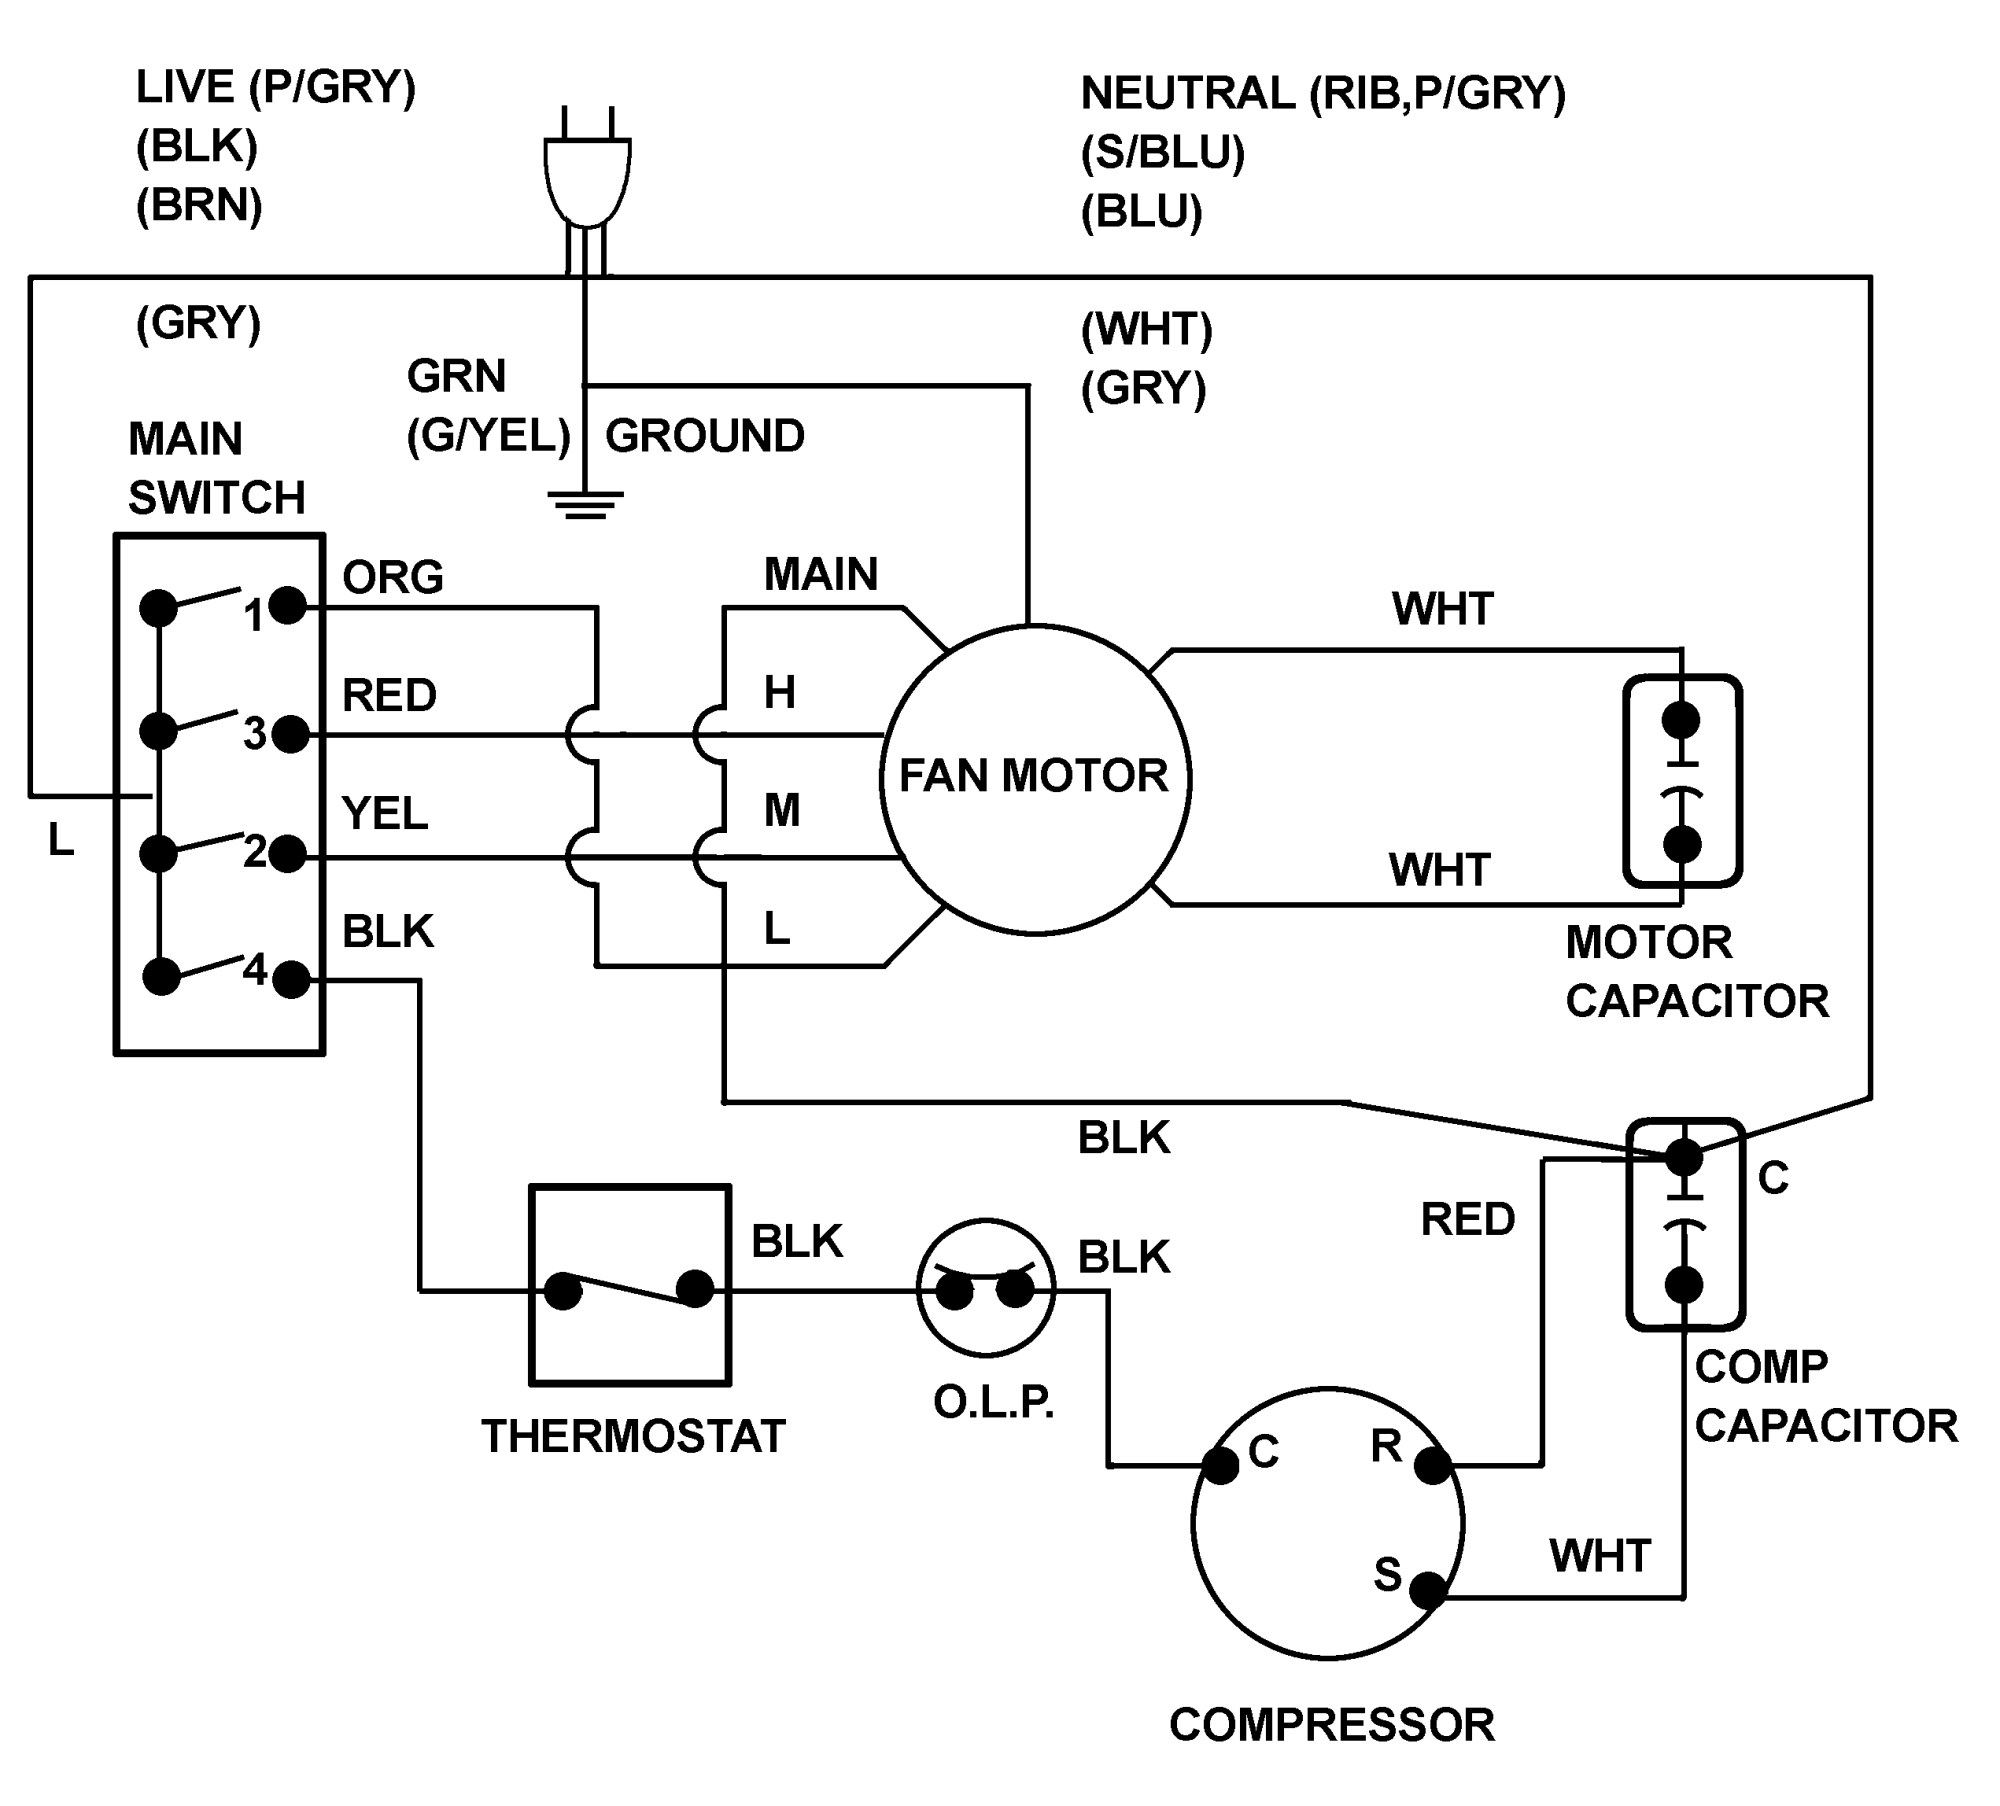 hight resolution of hight resolution of psc compressor wiring diagram wiring diagram data today psc compressor wiring diagram